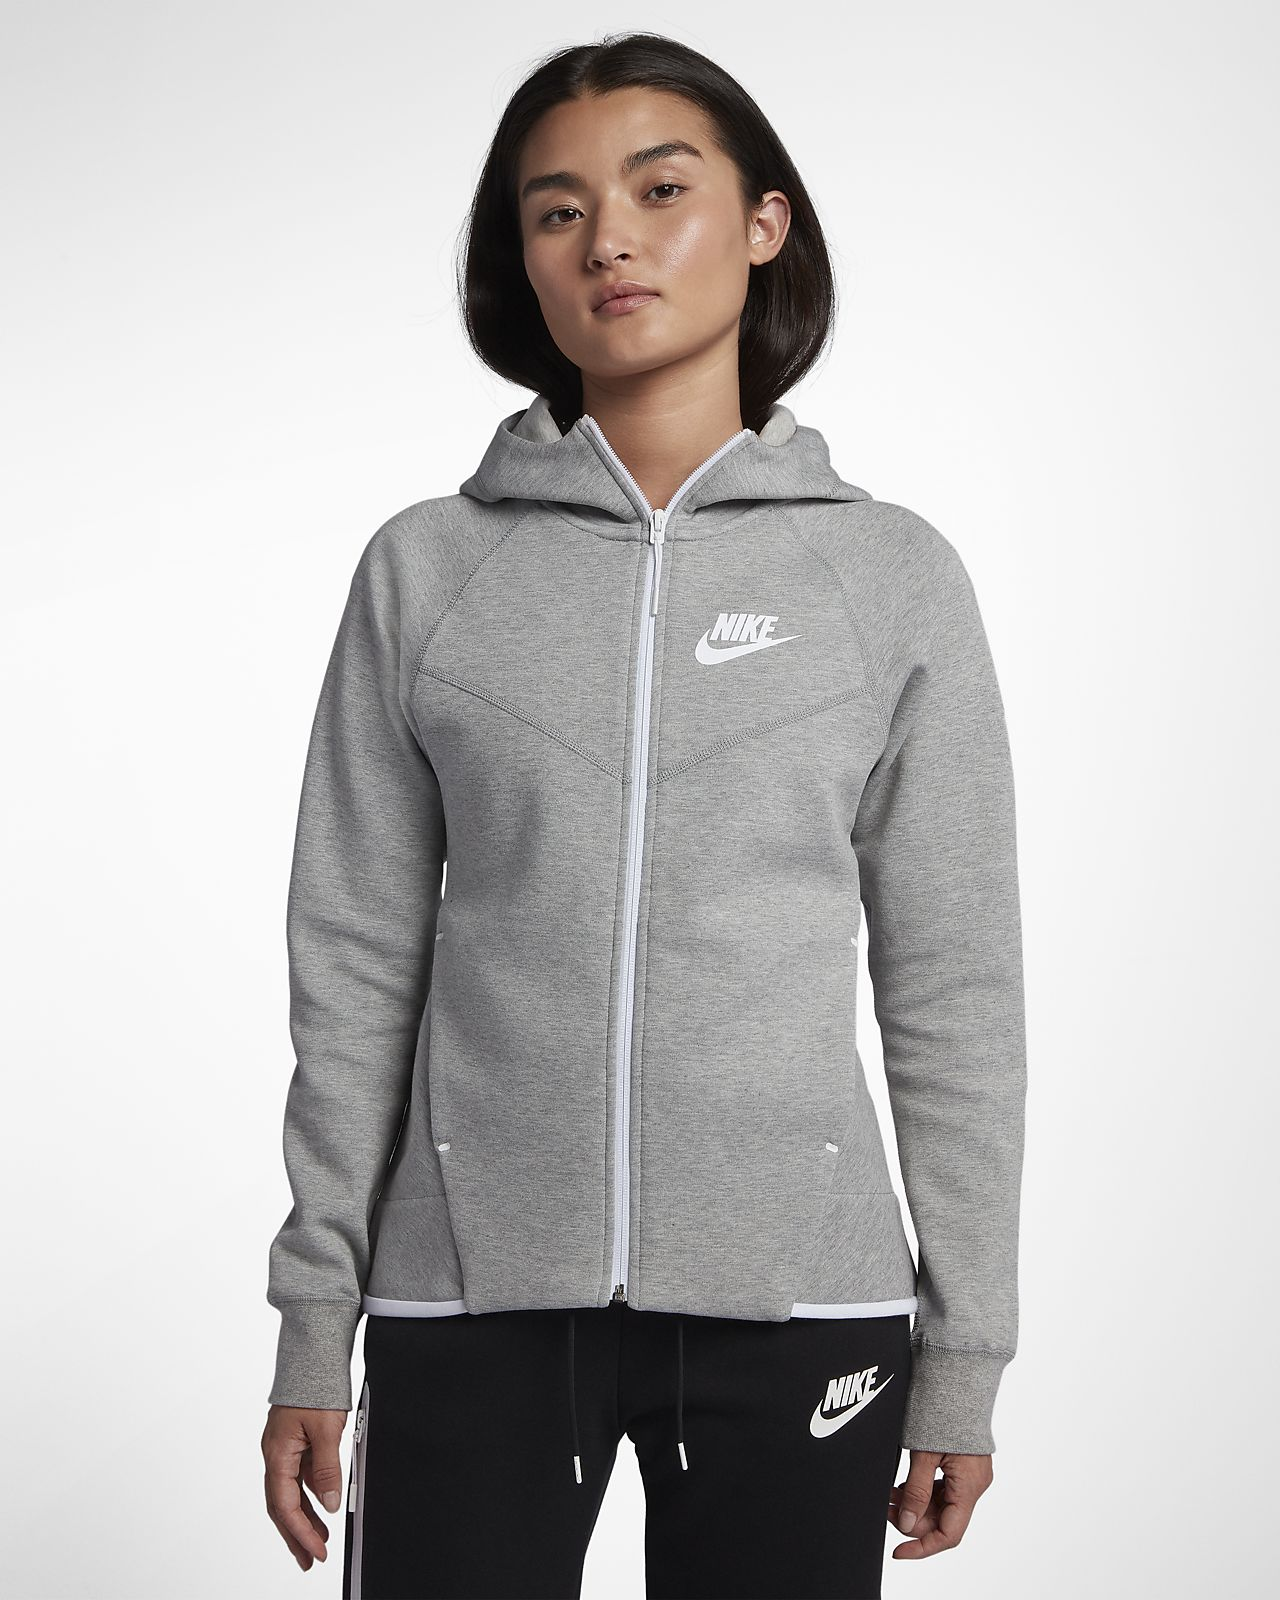 Nike Sportswear Tech Fleece Windrunner Women's Full Zip Hoodie